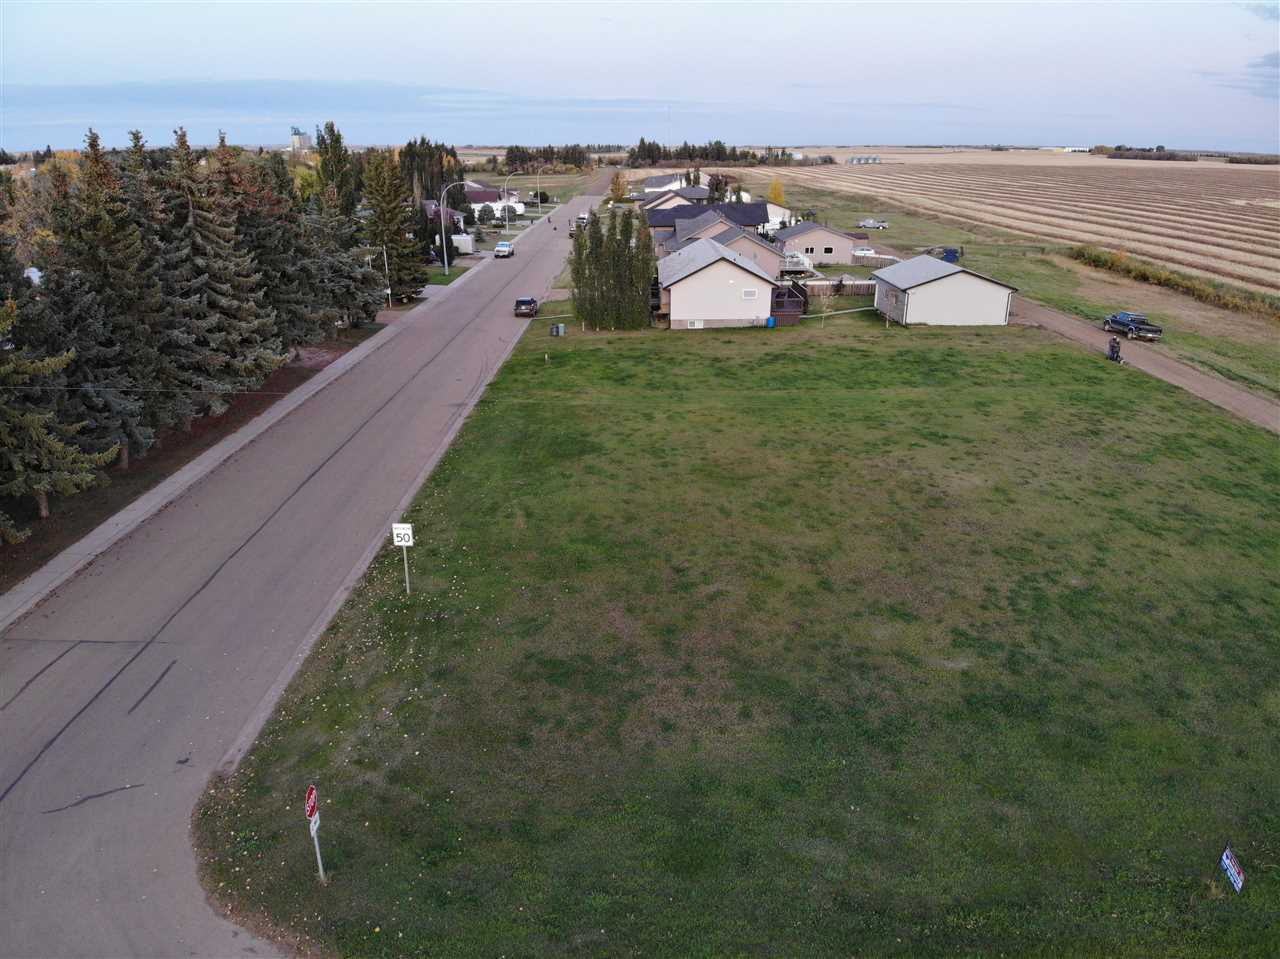 2 Killam lots in prime location! Moving to Killam from the country and looking for that acreage feeling on the edge of town looking out at the countryside. These double 130x120 lots are ideal for you to build a nice home and plenty of garage space. Nicely located heading south of Killam past Ball Diamonds and Heritage Park to very last lots, level and ready to build on with full services at the lot line. Private sale so no building timeline requirements, and with beautiful corner lot for privacy. Owner may sell lots separately.